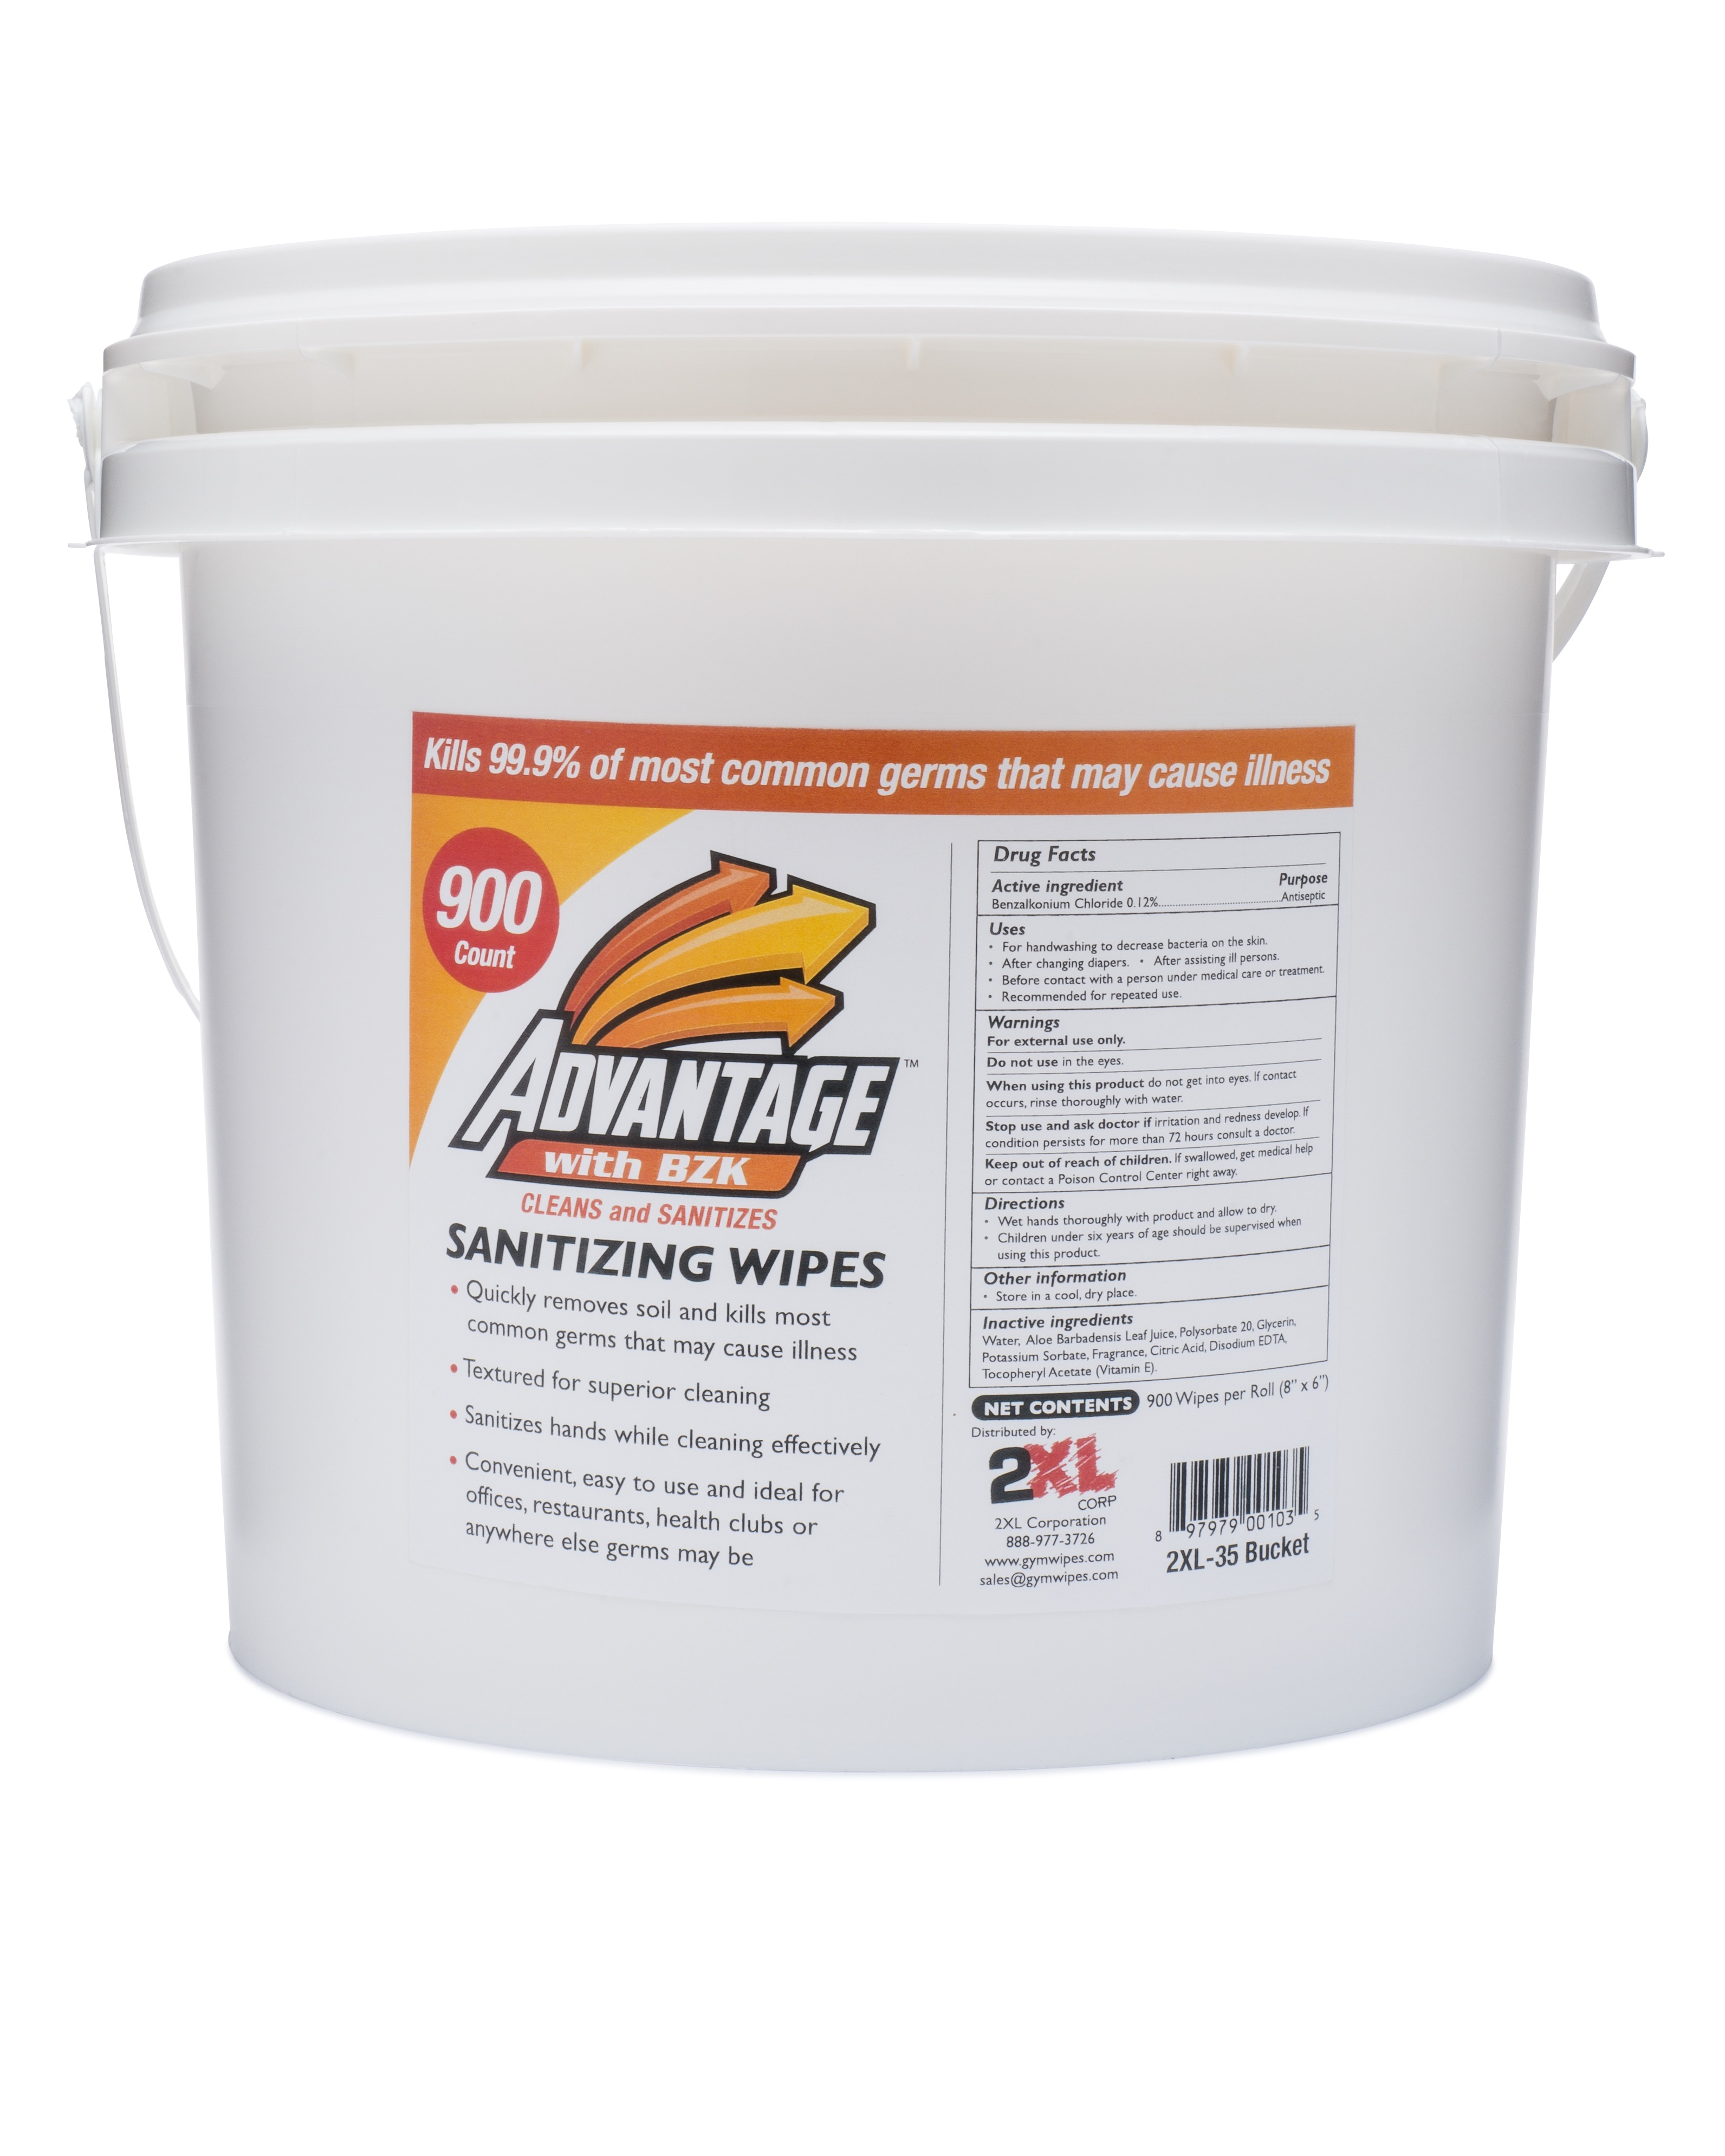 ADVANTAGE SANTIZING WIPES